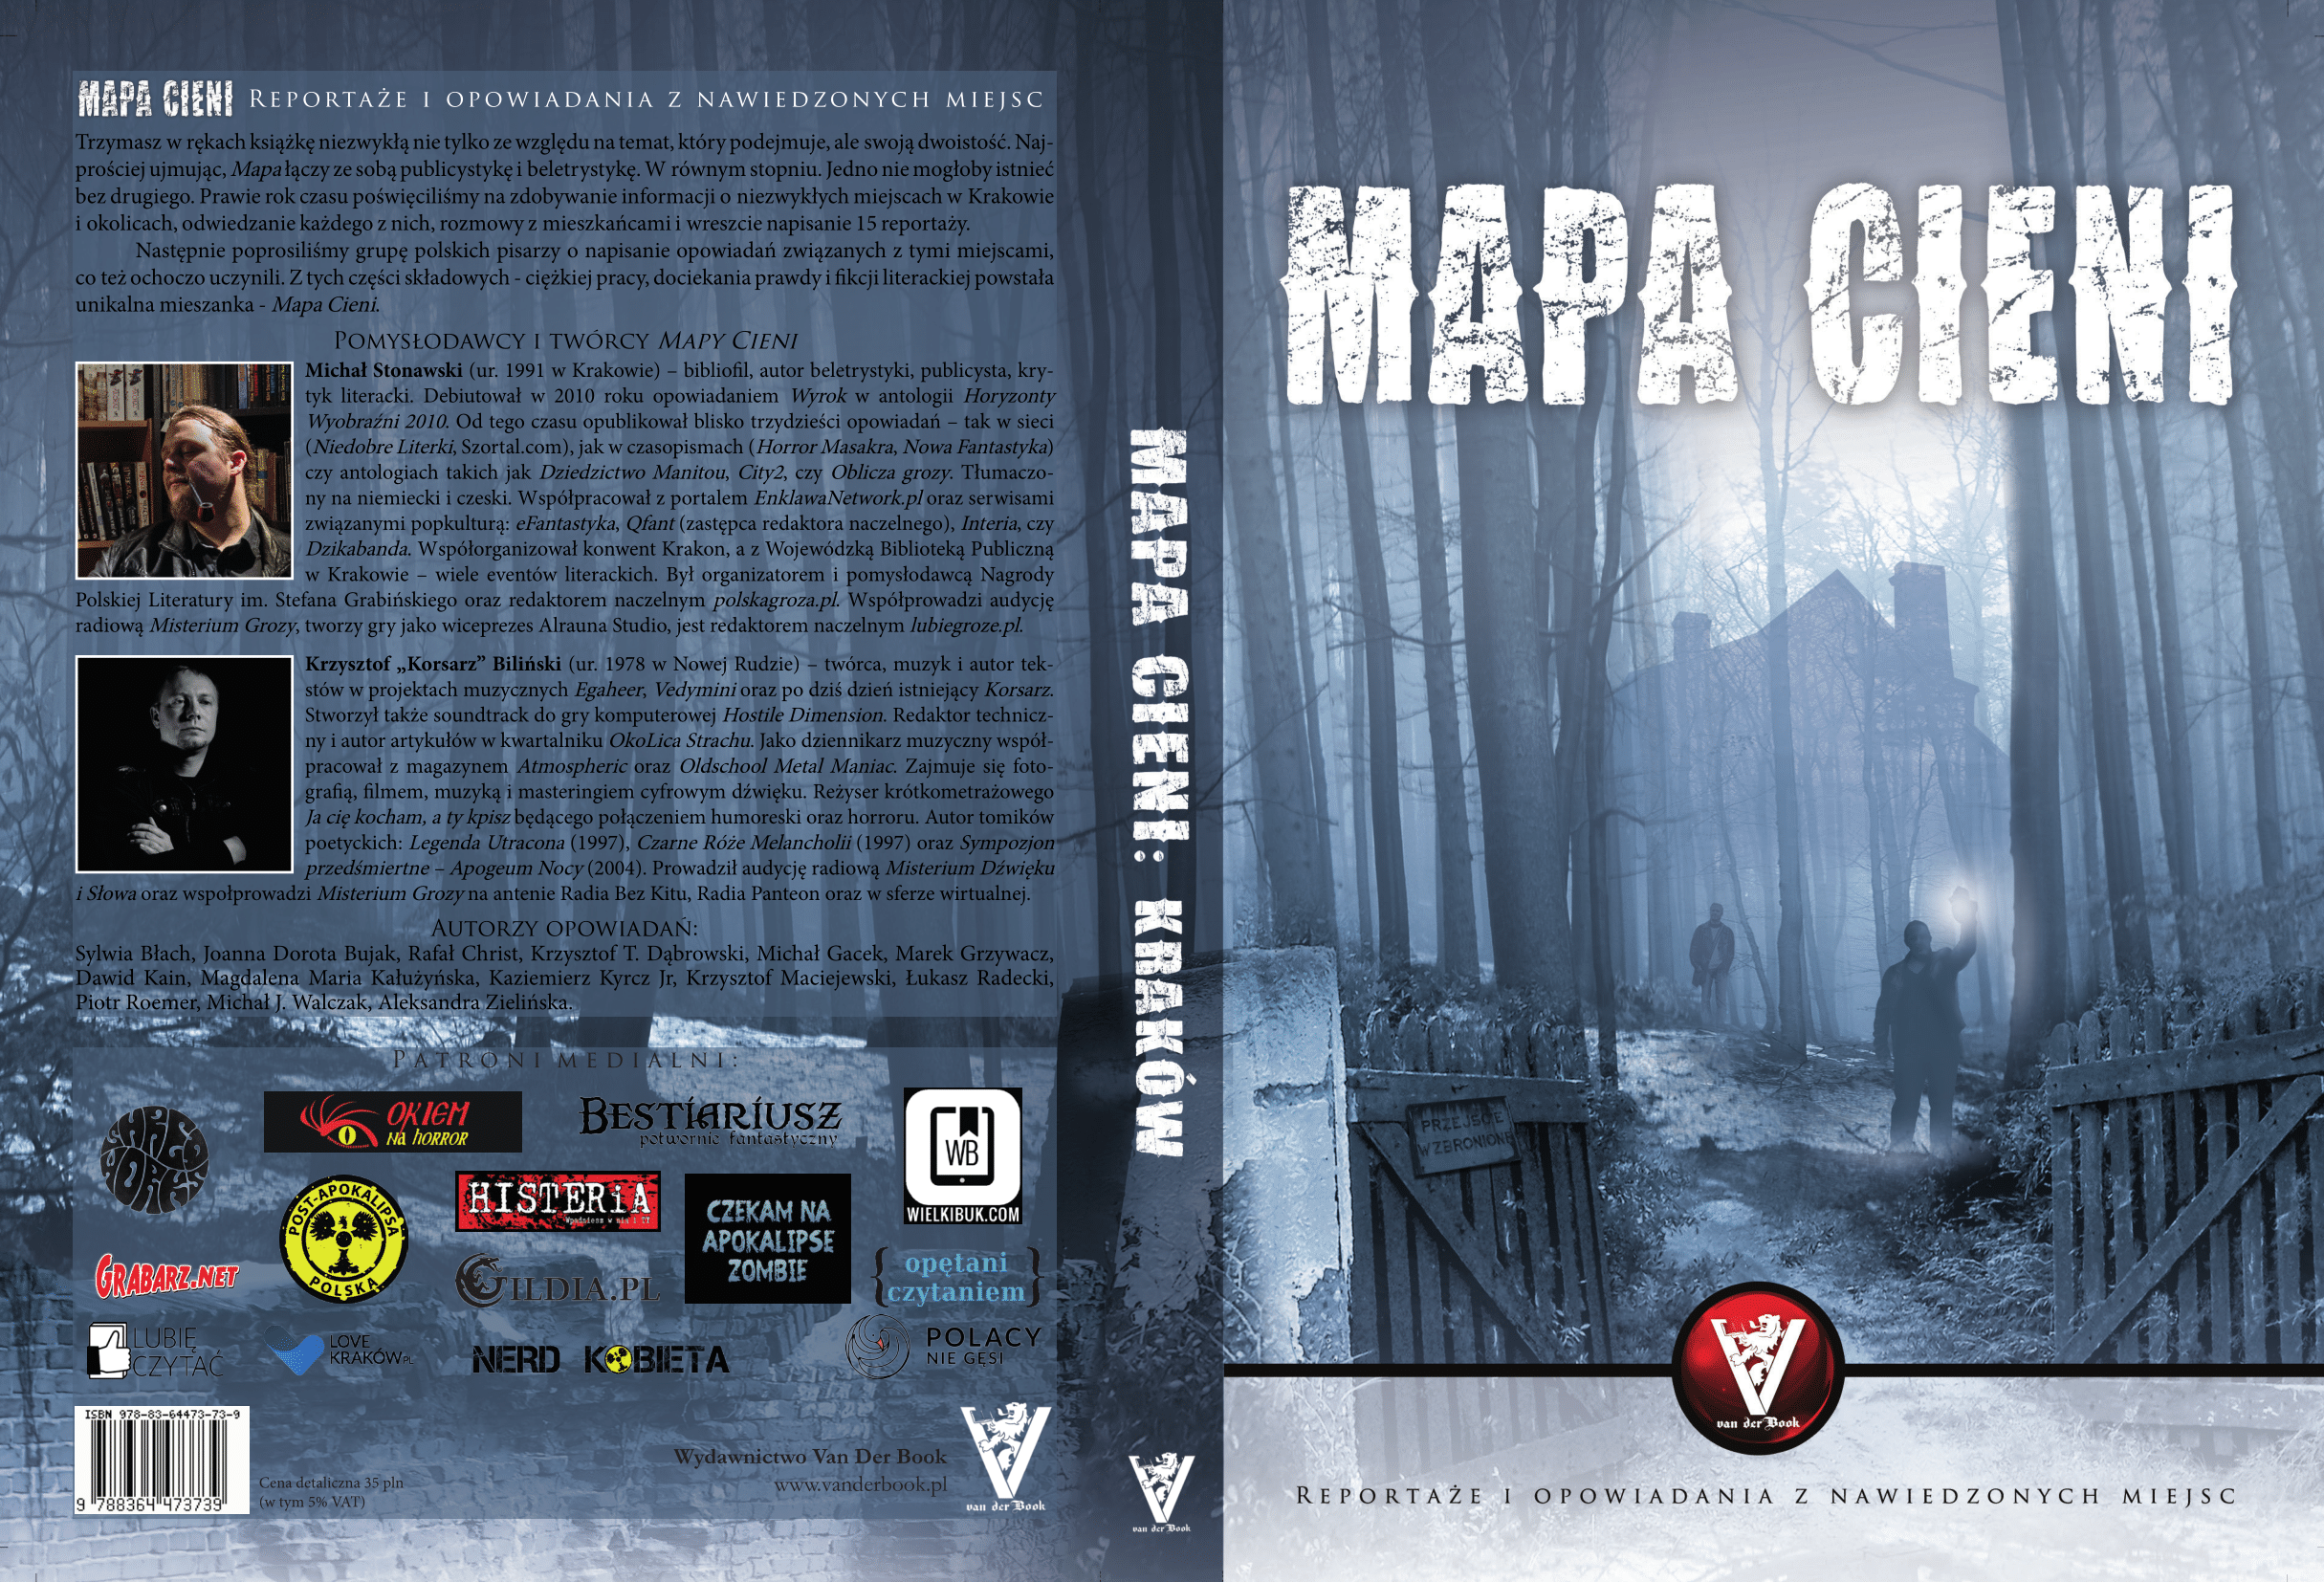 mapa-cieni-okladka_full-v7-1